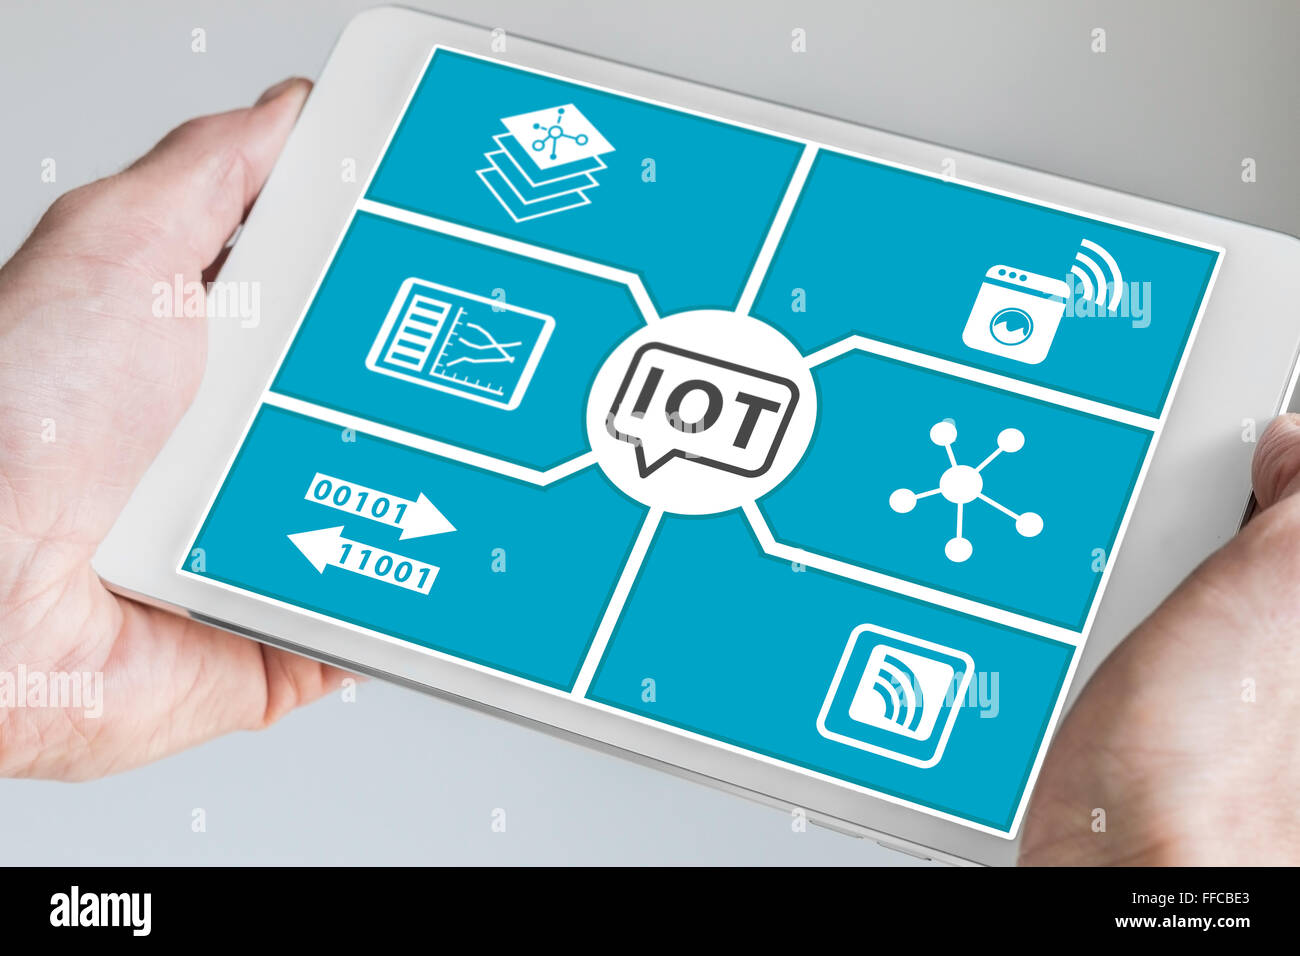 Internet of things (IOT) concept. Hand holding modern smartphone or tablet. - Stock Image